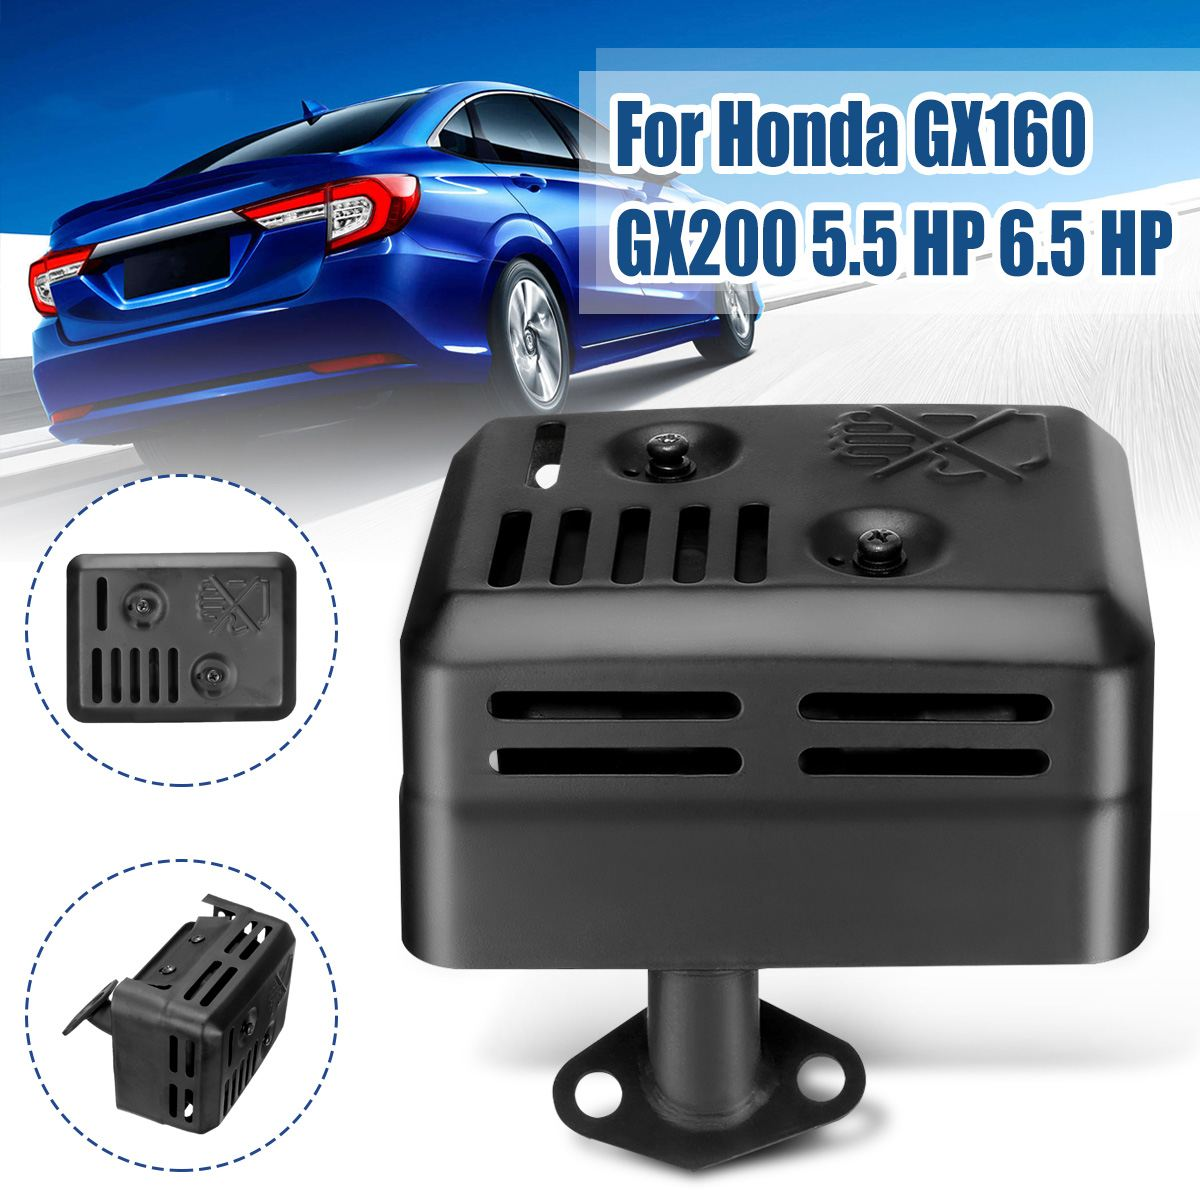 For Honda GX120 GX160 GX200 5.5 For HP 6.5 For HP  Exhaust Muffler System With Heat Shield Assembly Gasket